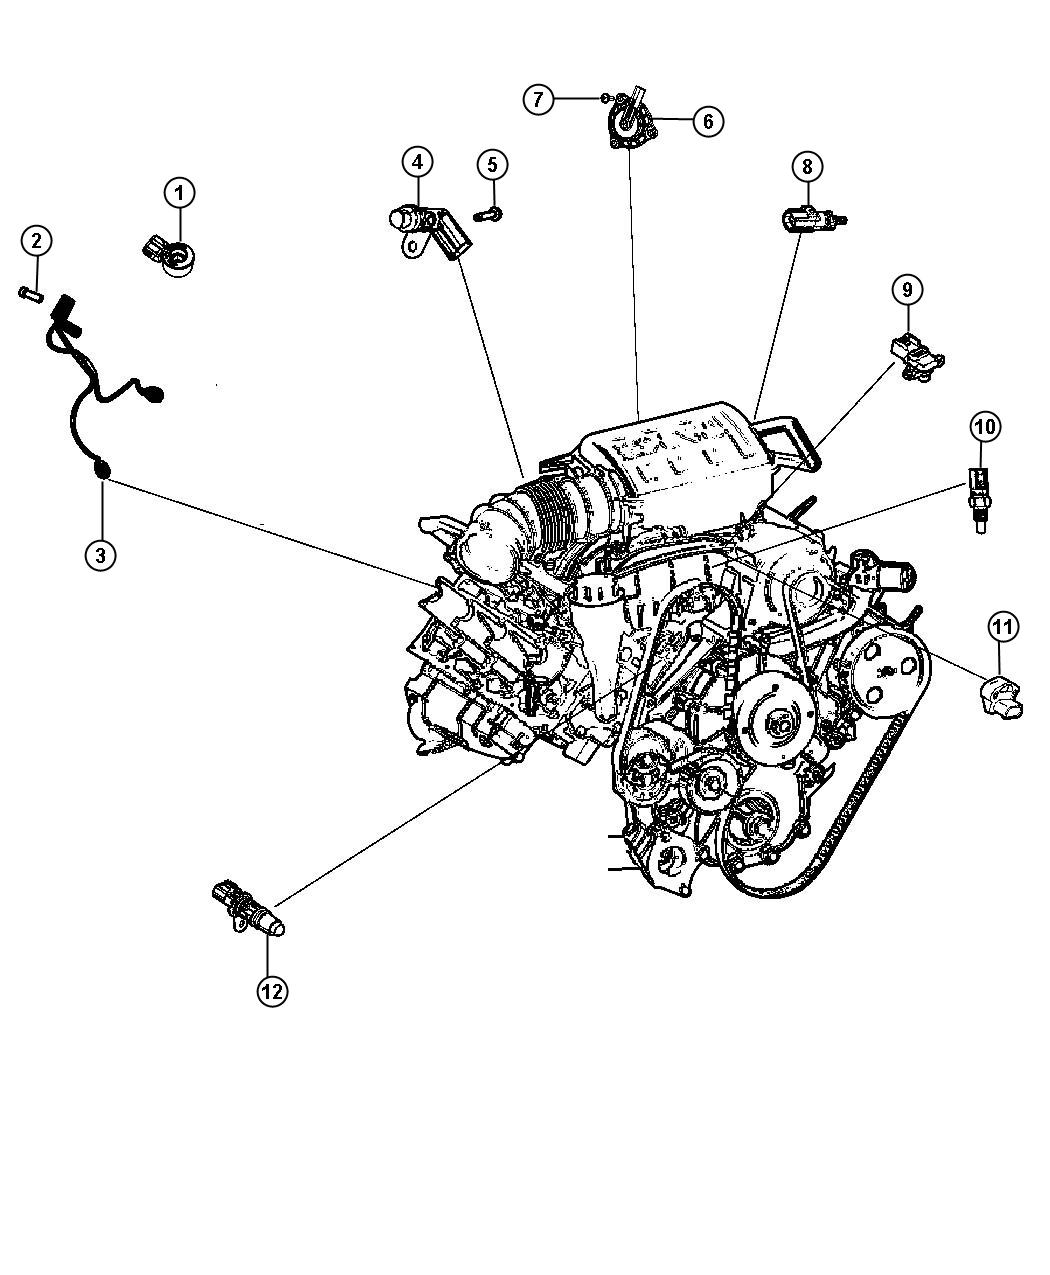 Meaning Of Position Number For Housing Auto Electrical Wiring Diagram Hks Evc Ez Related With 1996 Mustang Gt